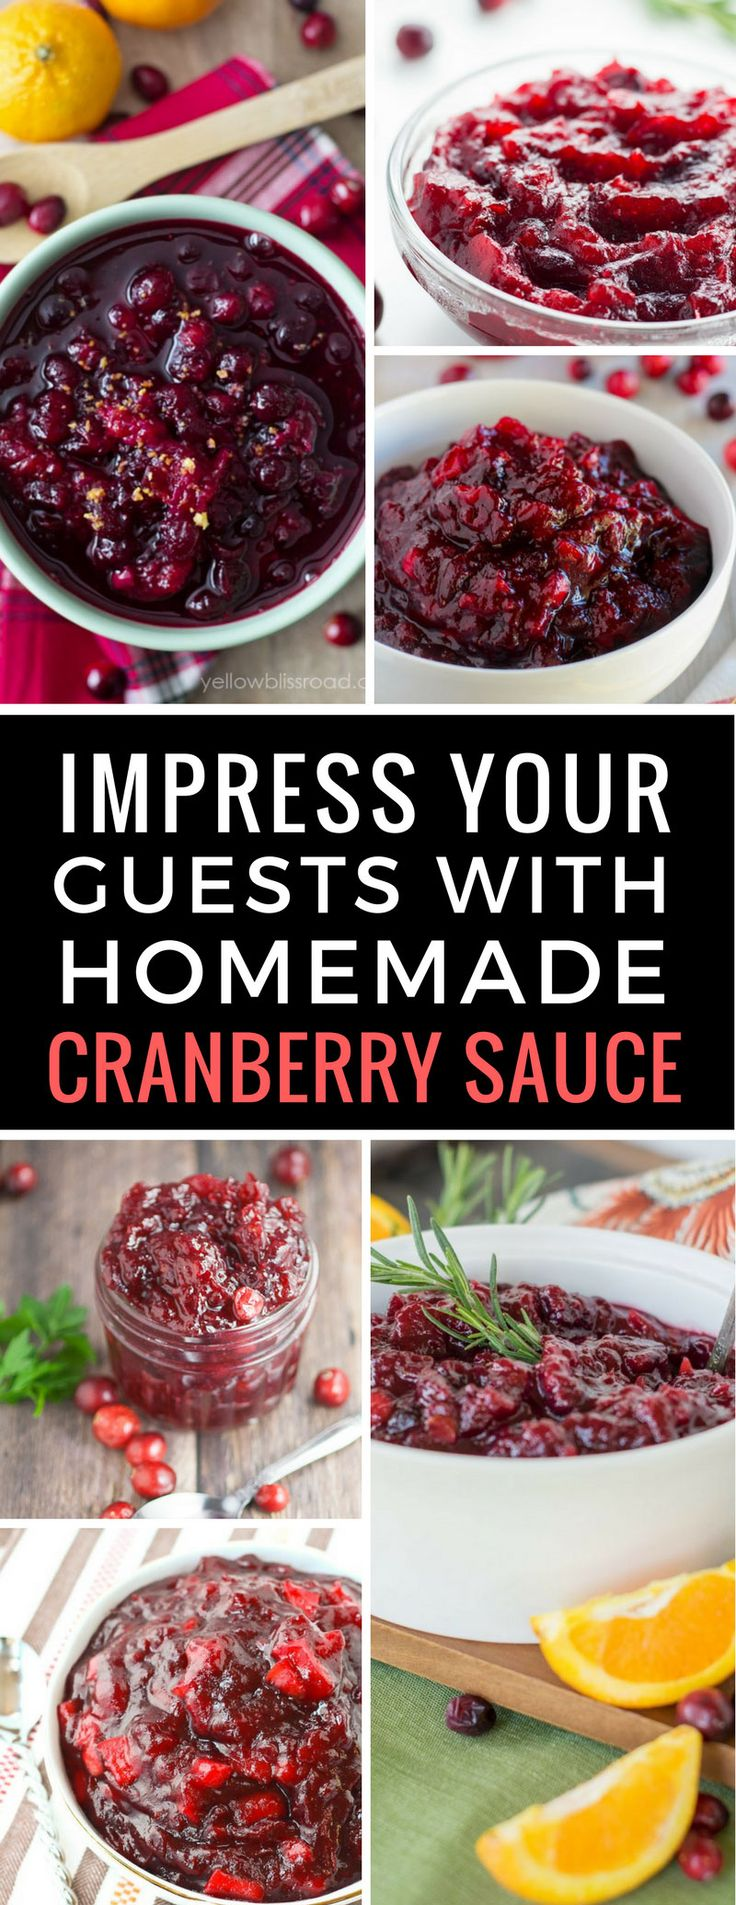 Ready to ditch the can and try a homemade Cranberry Sauce this year? Whether you're preparing for Thanksgiving or Christmas your guests will love any one of these sauces! Click on the image to see the whole collection! | Cranberry Sauce | Thanksgiving | Christmas | Recipes